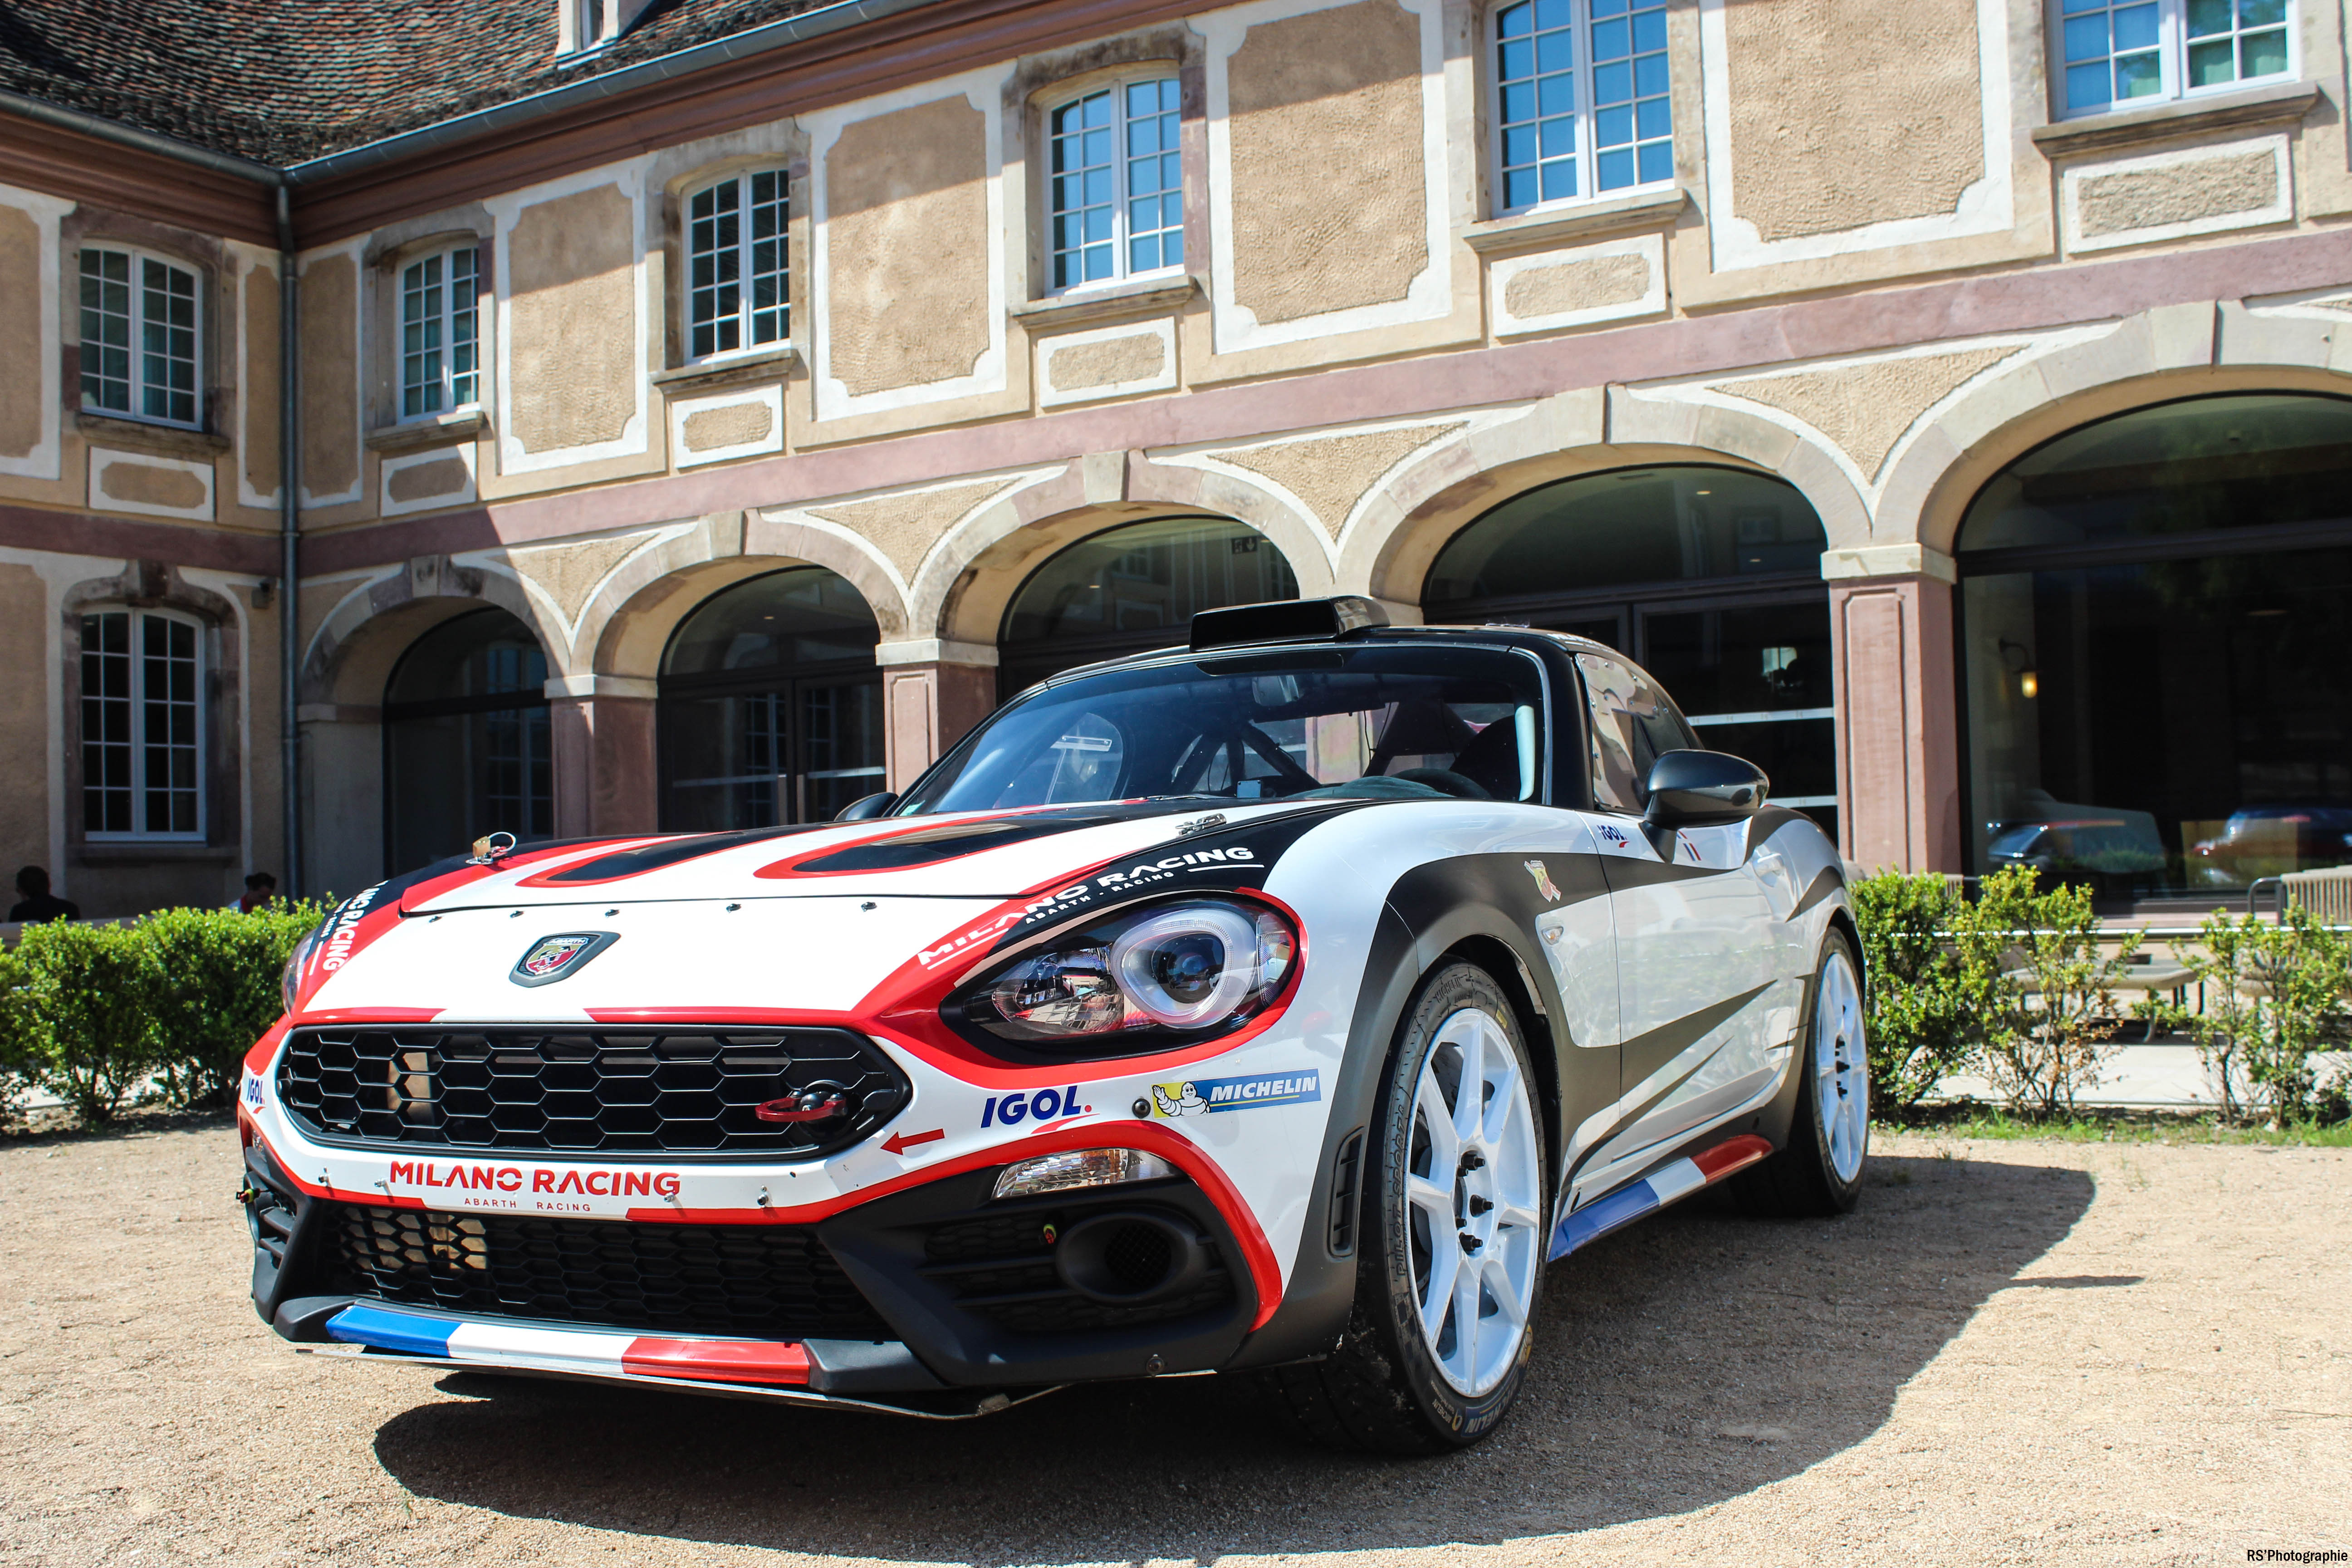 abarth124spider3-abarth-124-rallye-avant-front-Arnaud Demasier-RSPhotographie